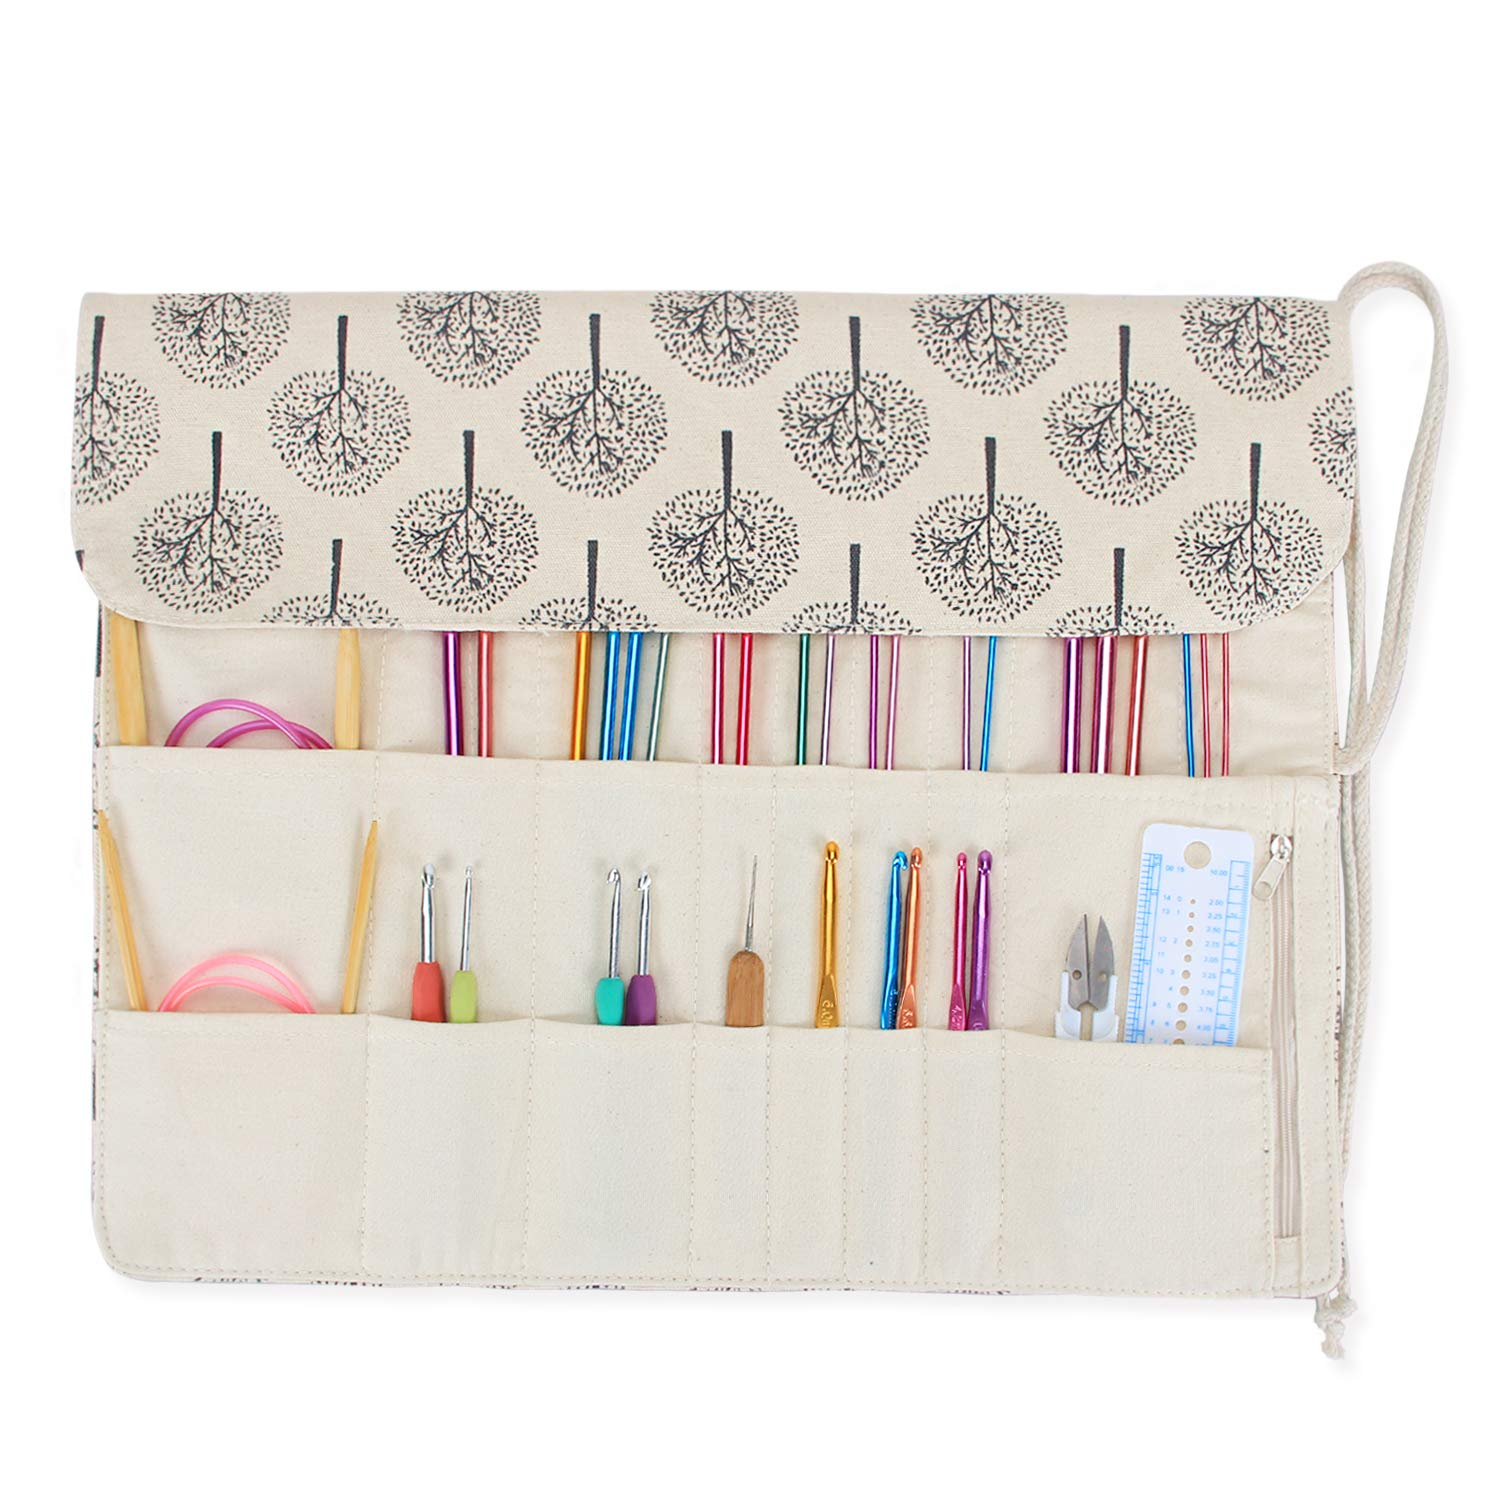 Teamoy Tunisian Crochet Hook Organizer Bag(up to 14 Inches), Cotton Canvas Roll Wrap for Afghan Crochet Hooks, Knitting Needles and Accessories, Tree by Teamoy (Image #6)